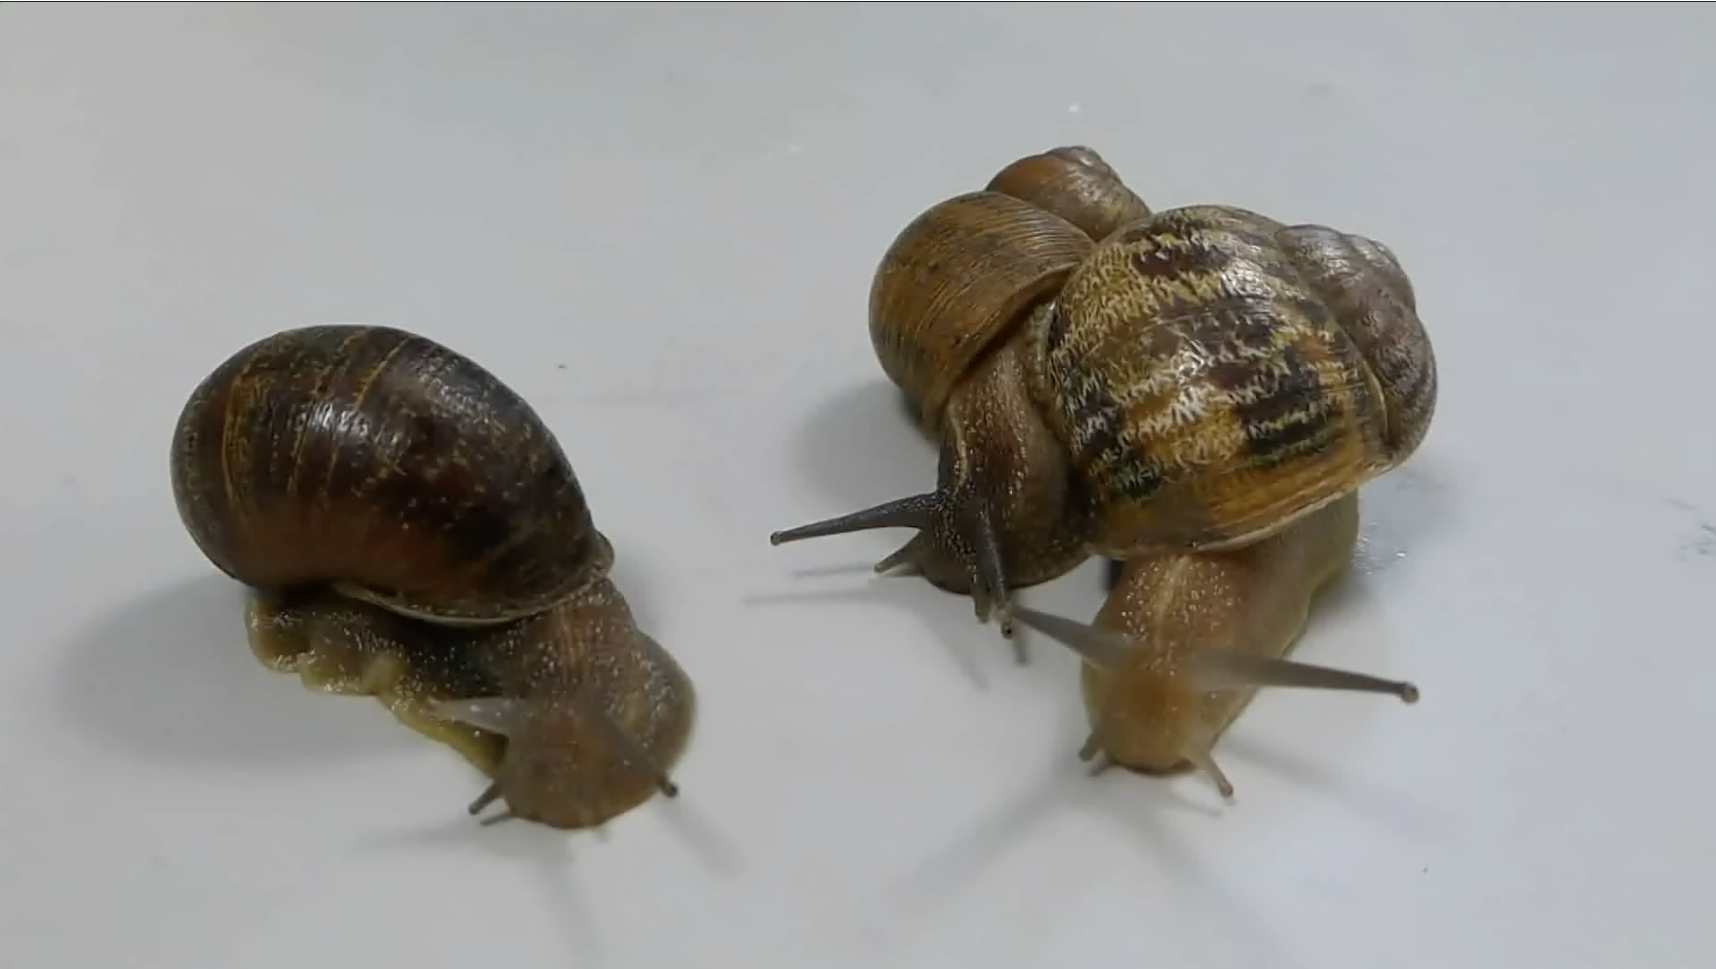 Jeremy the snail turns away as two snails, sent to him as potential mates, decide to mate with each other instead.